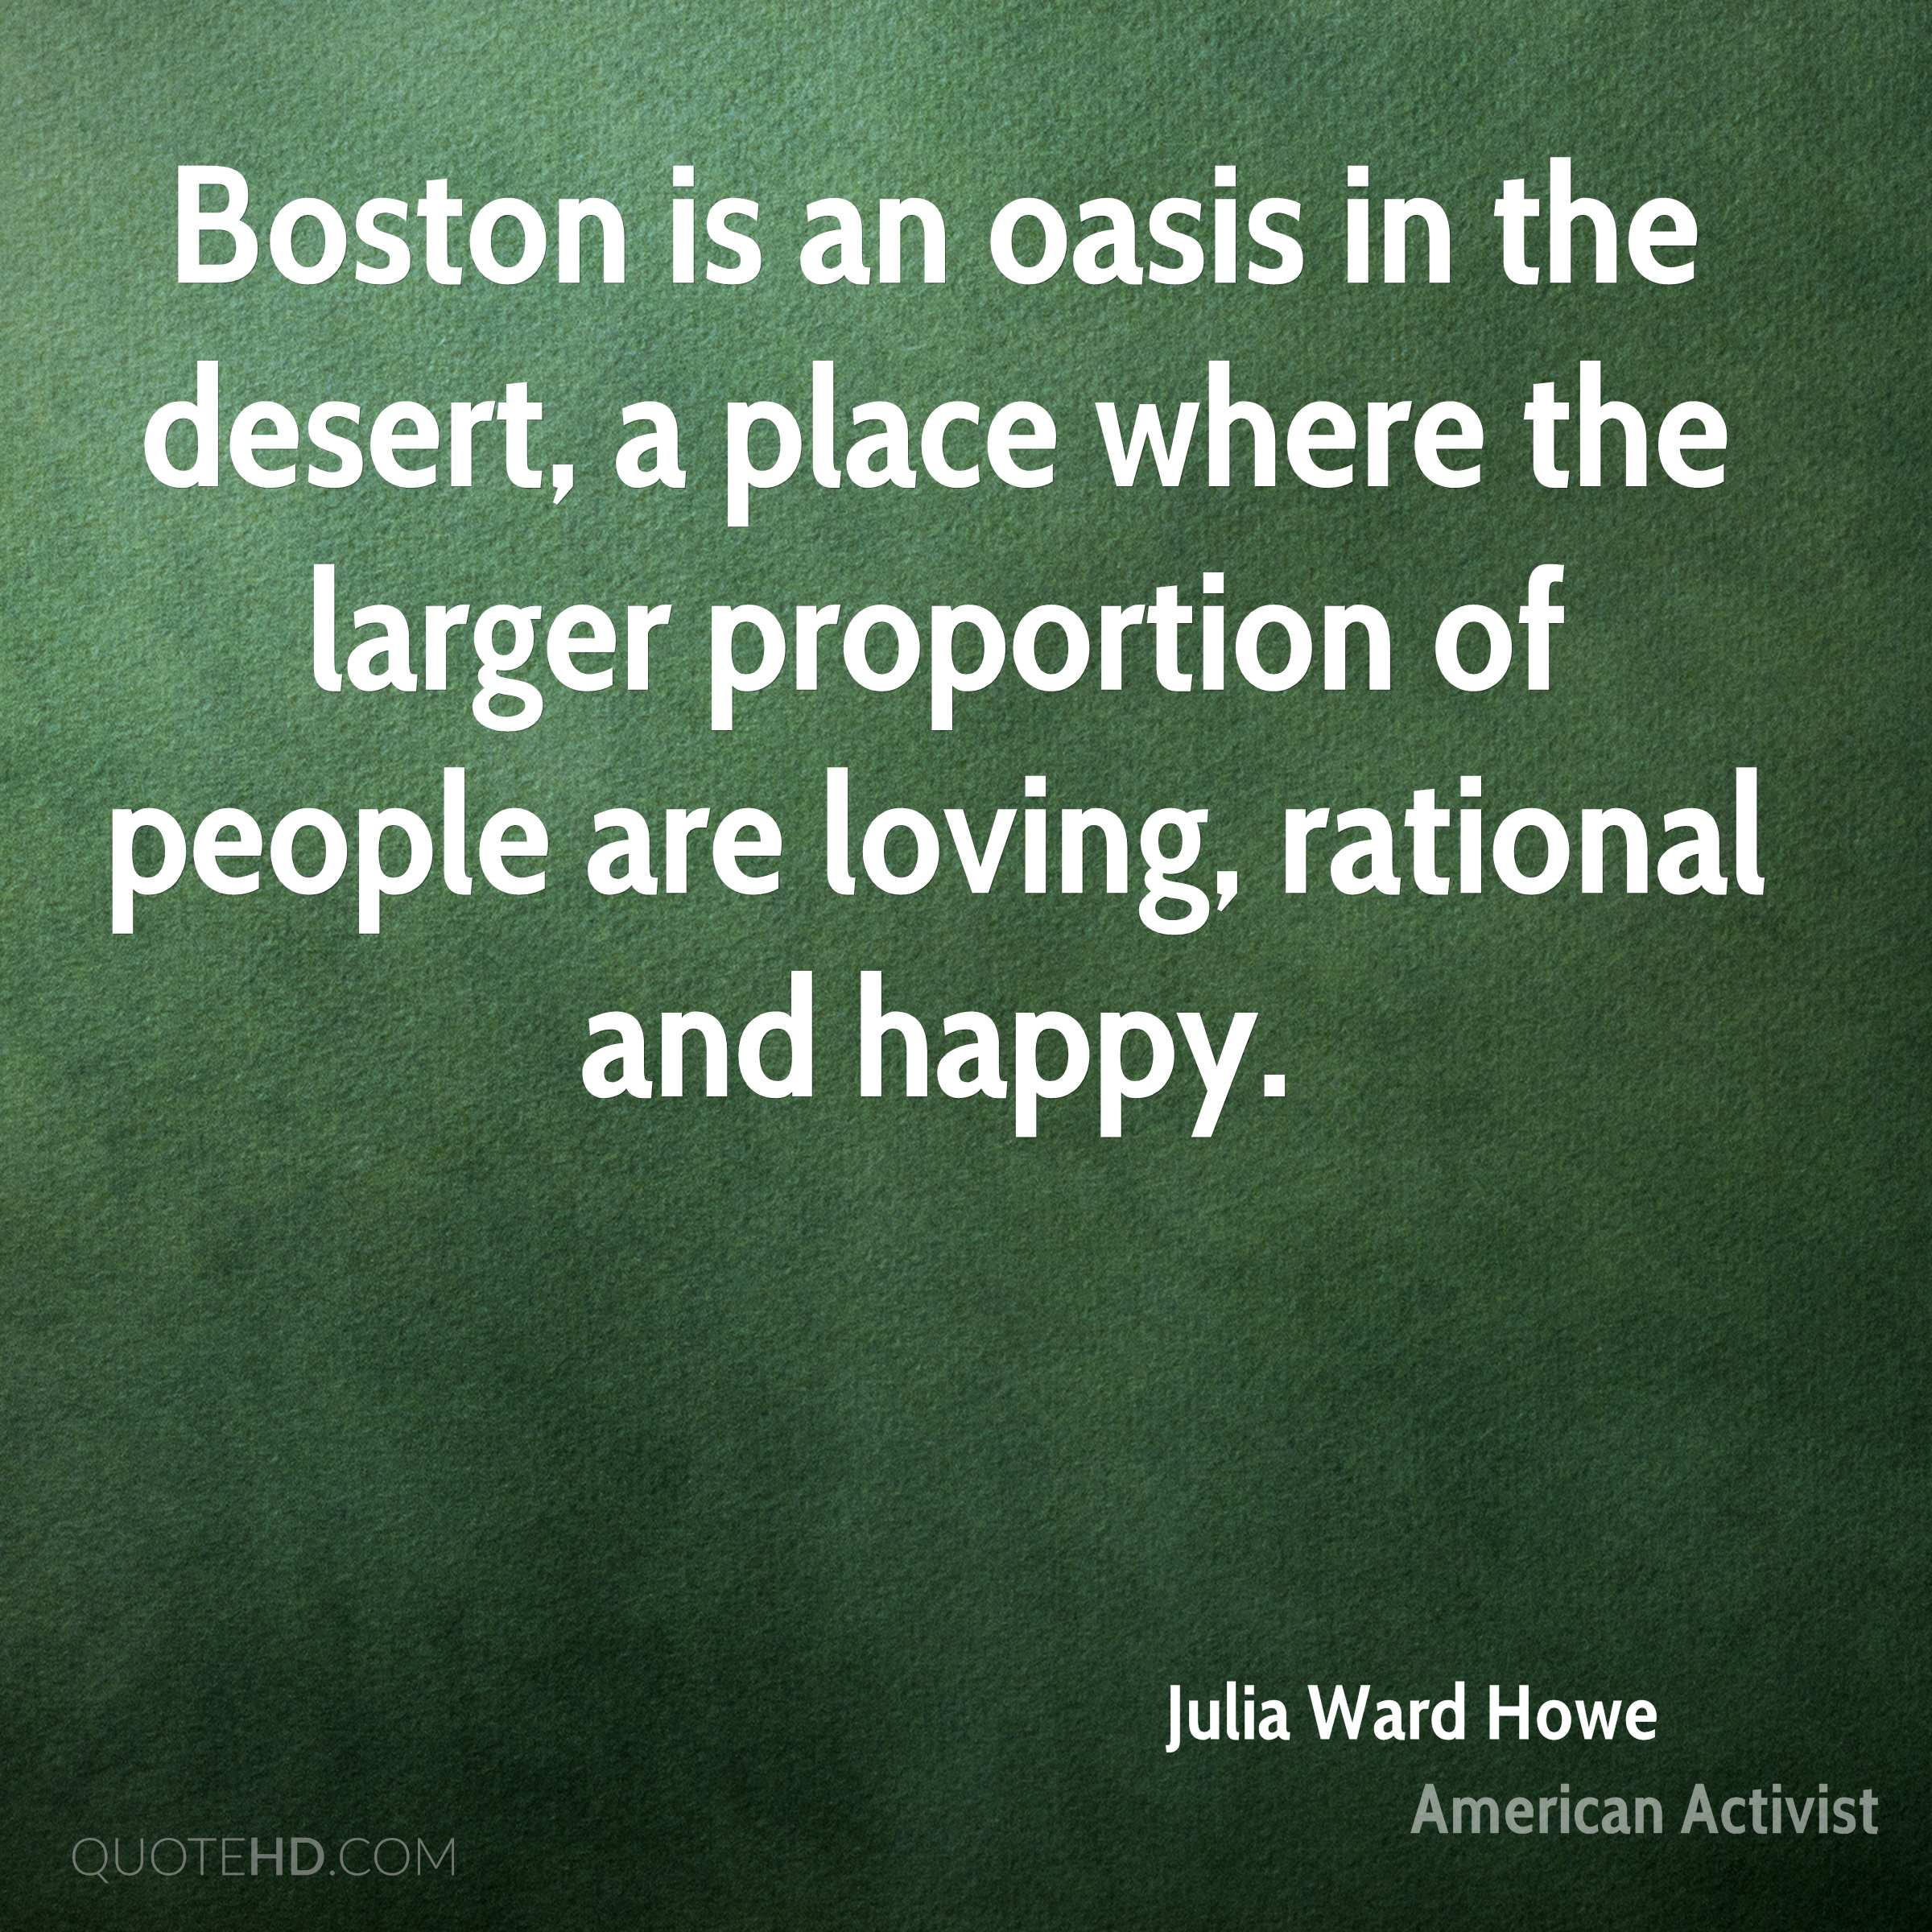 Boston is an oasis in the desert, a place where the larger proportion of people are loving, rational and happy.